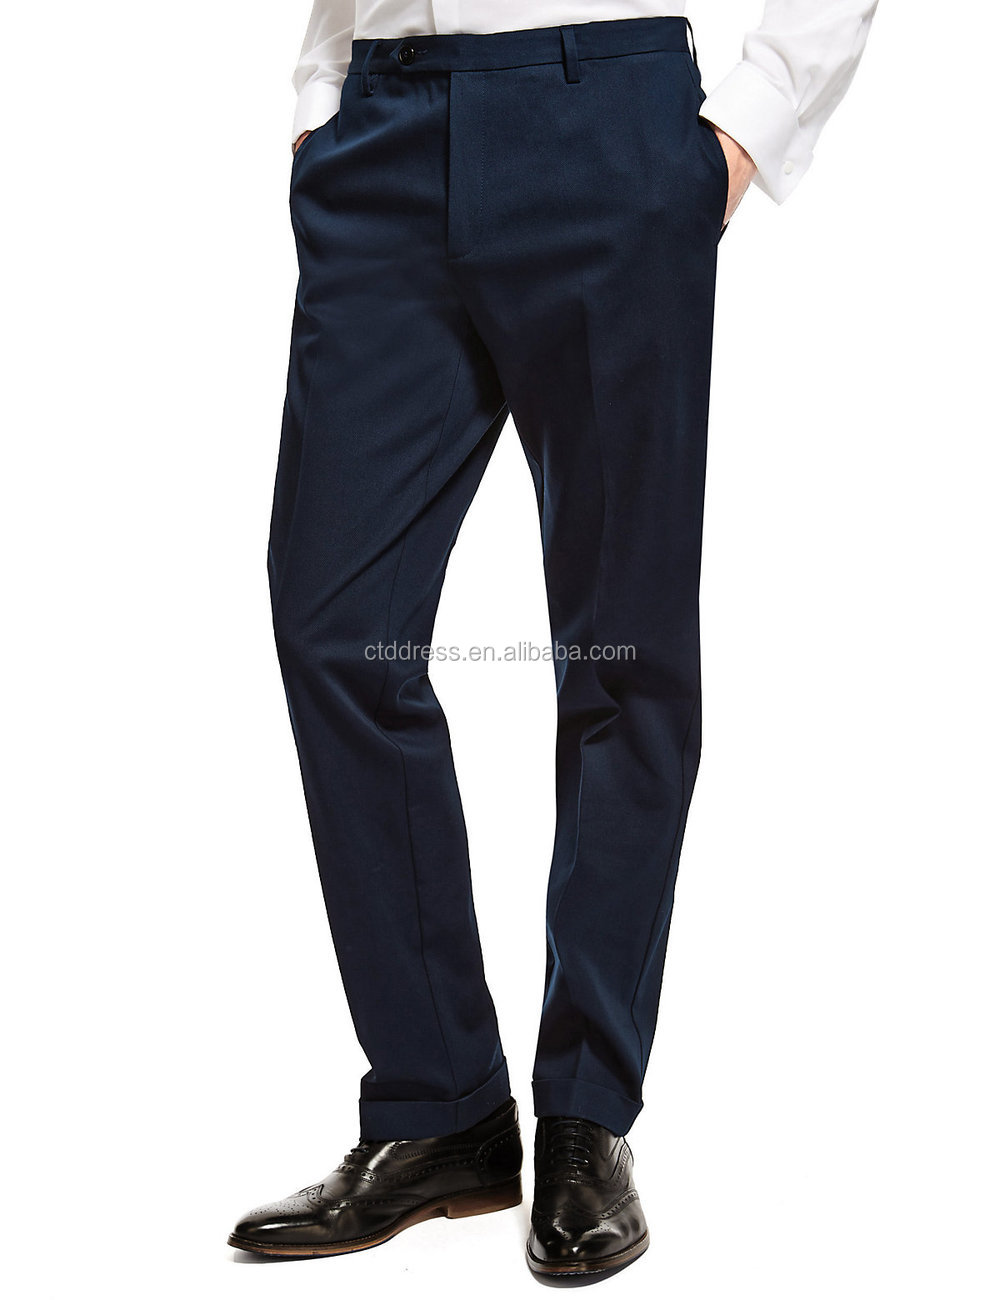 2015 New style 100% cotton dark blue chino trousers